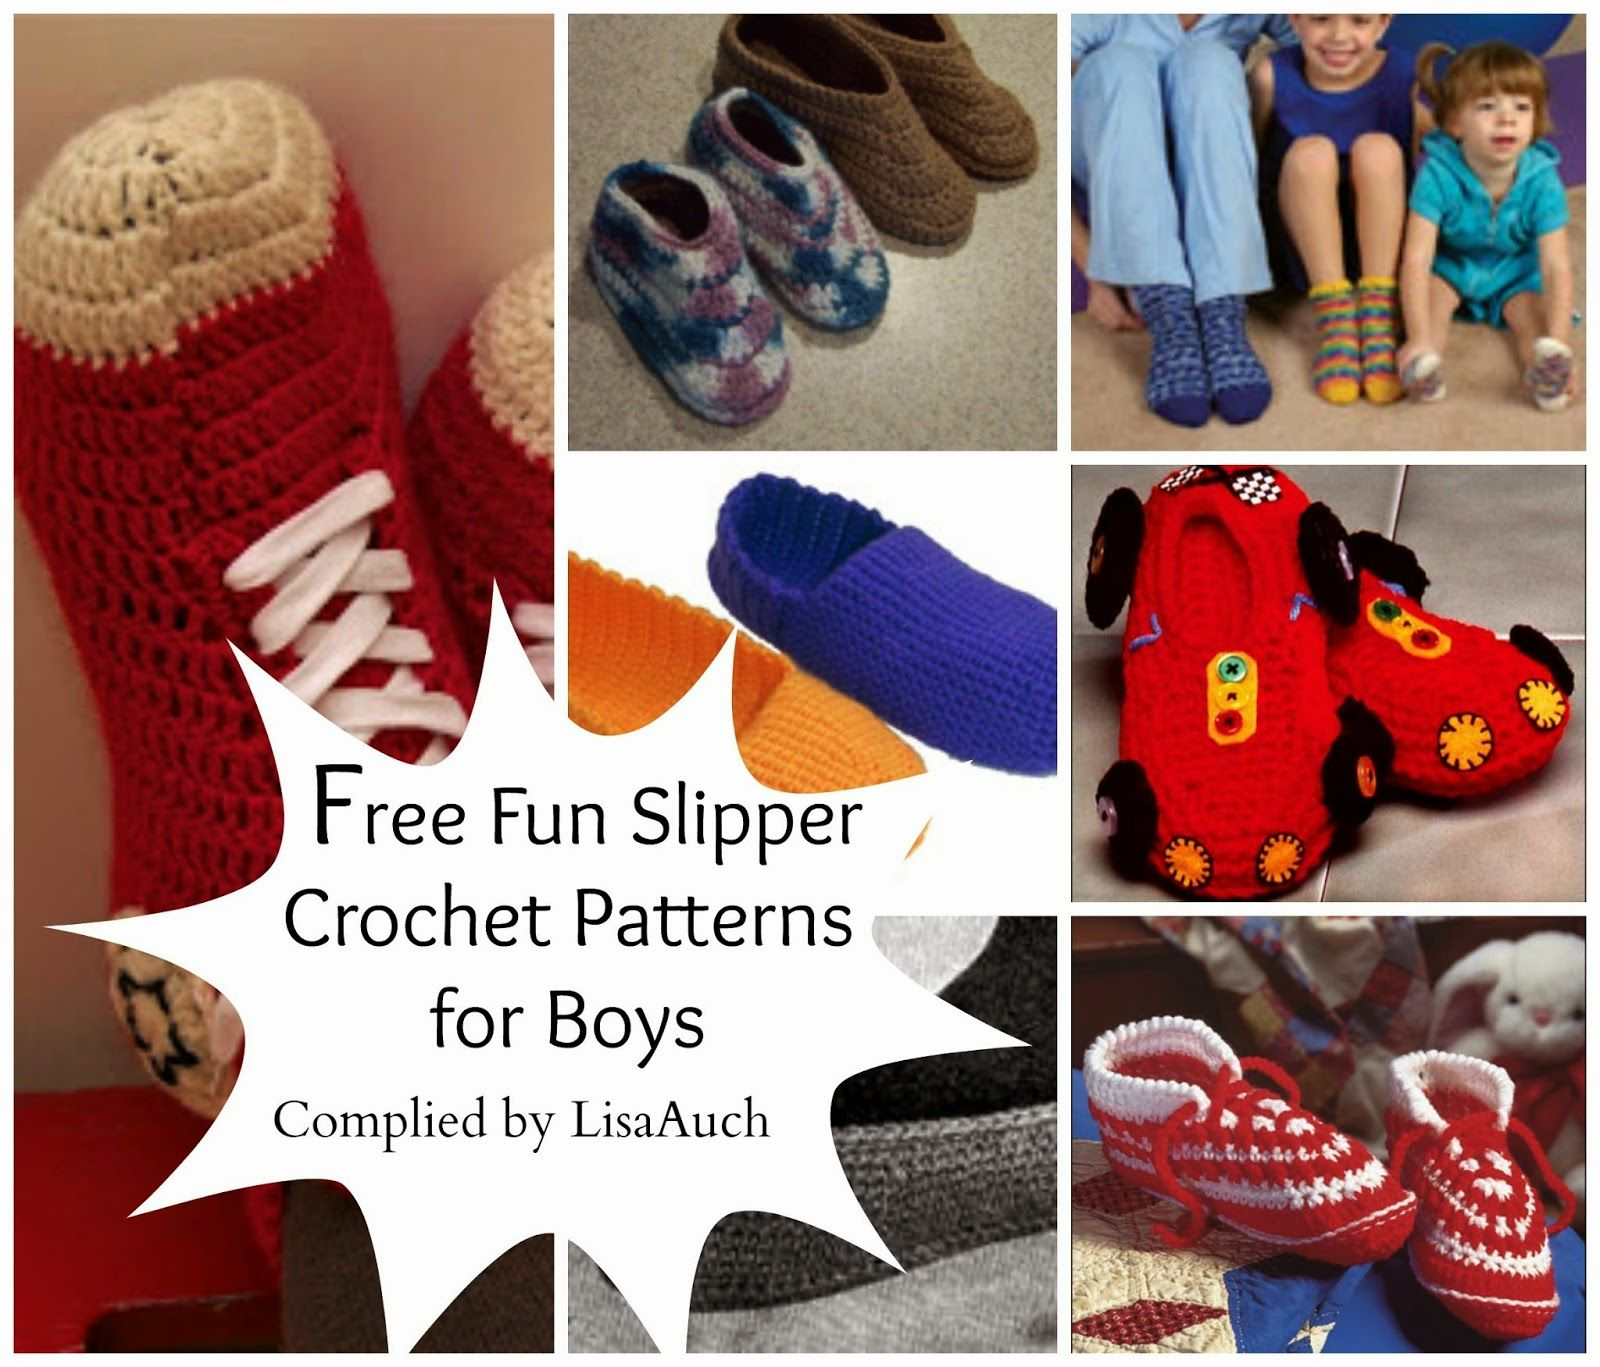 Free crochet slipper patterns for boys free crochet patterns free crochet slipper patterns for boys free crochet patterns bankloansurffo Choice Image